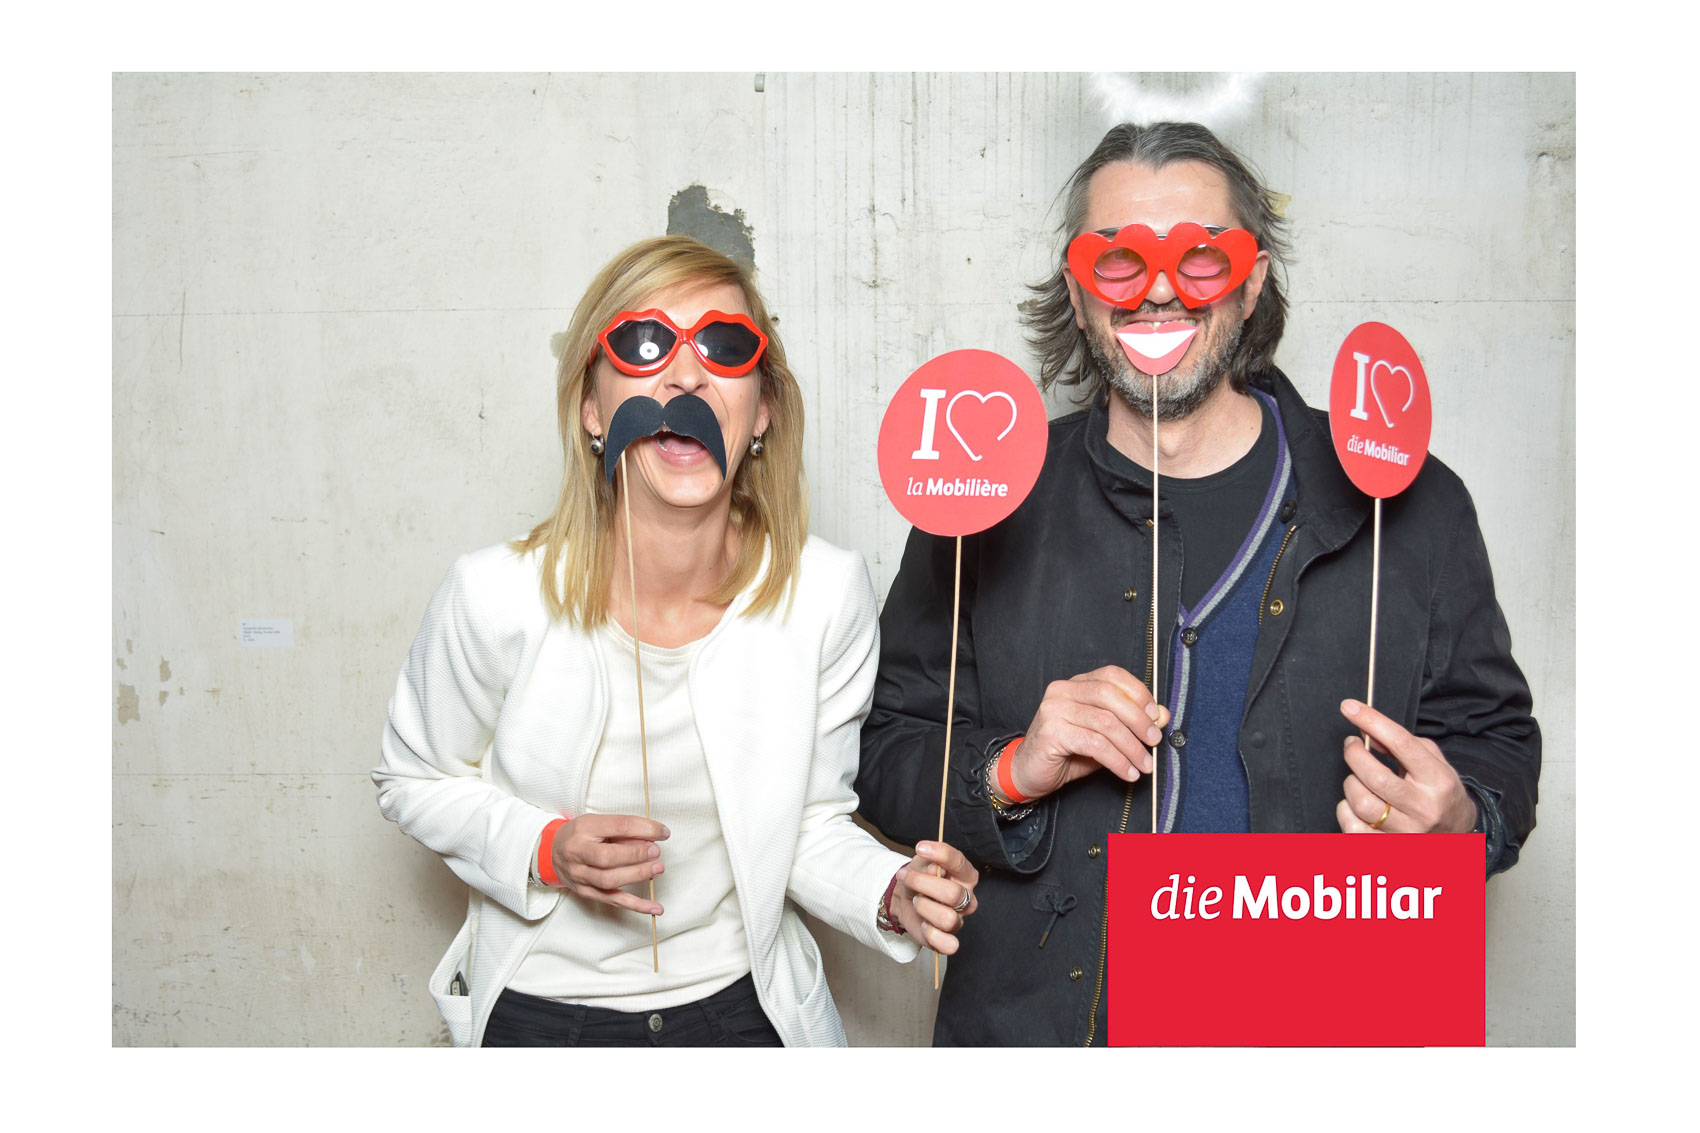 Photo-Booth-Baschung-Fotografie-Event-20.jpg